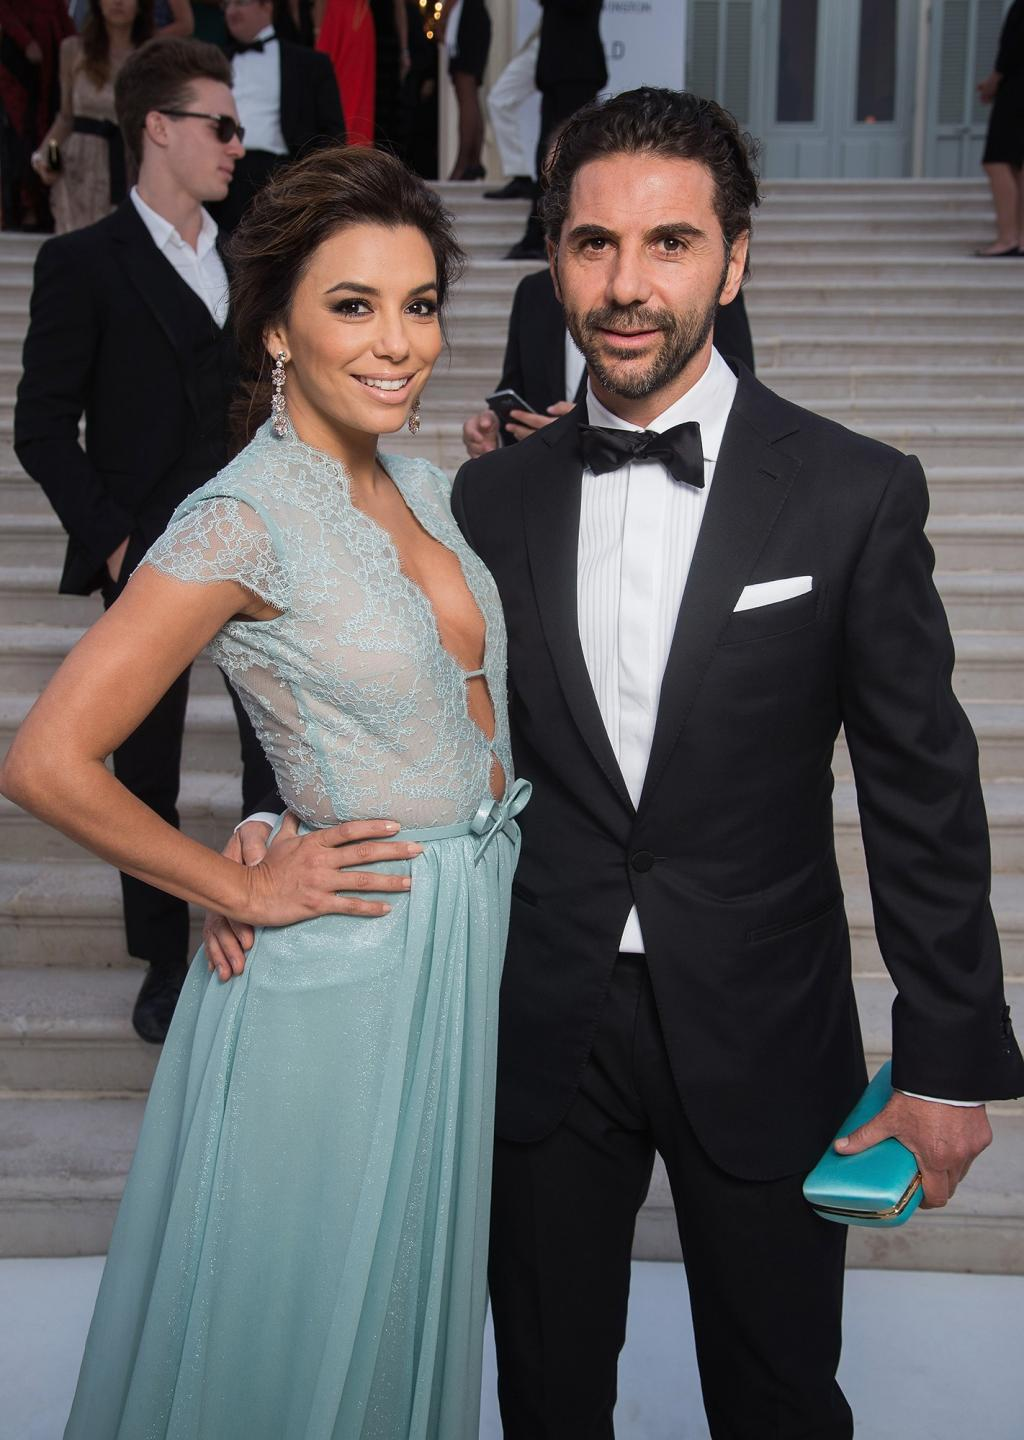 Eva Longoria Celebrates Her 1-Year Wedding Anniversary: 'I Never Thought I Would Get Married Again'